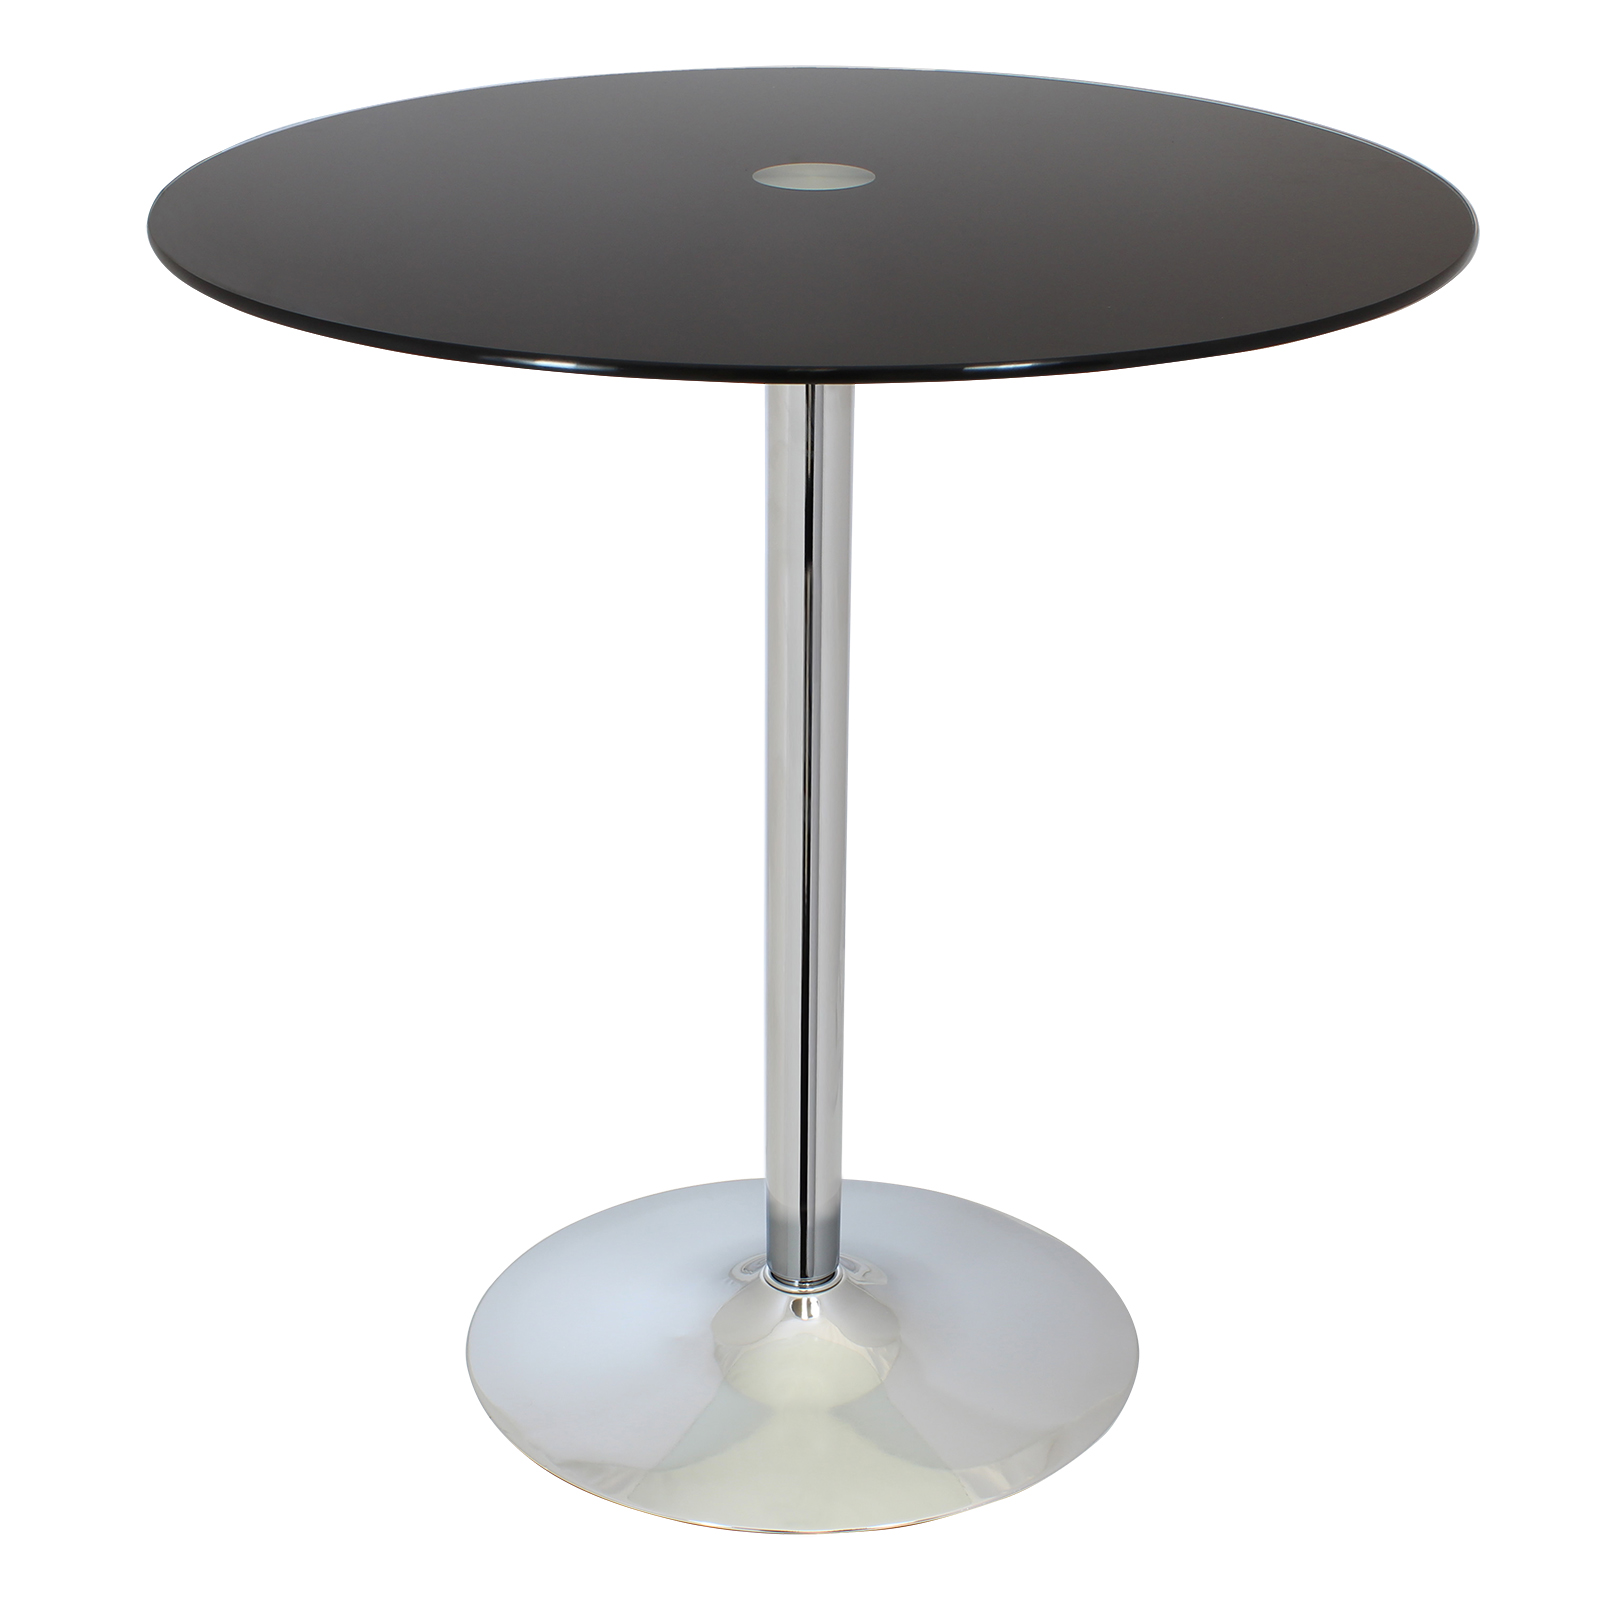 Sale round black glass top bistro dining table bar cafe - Black glass top dining table ...